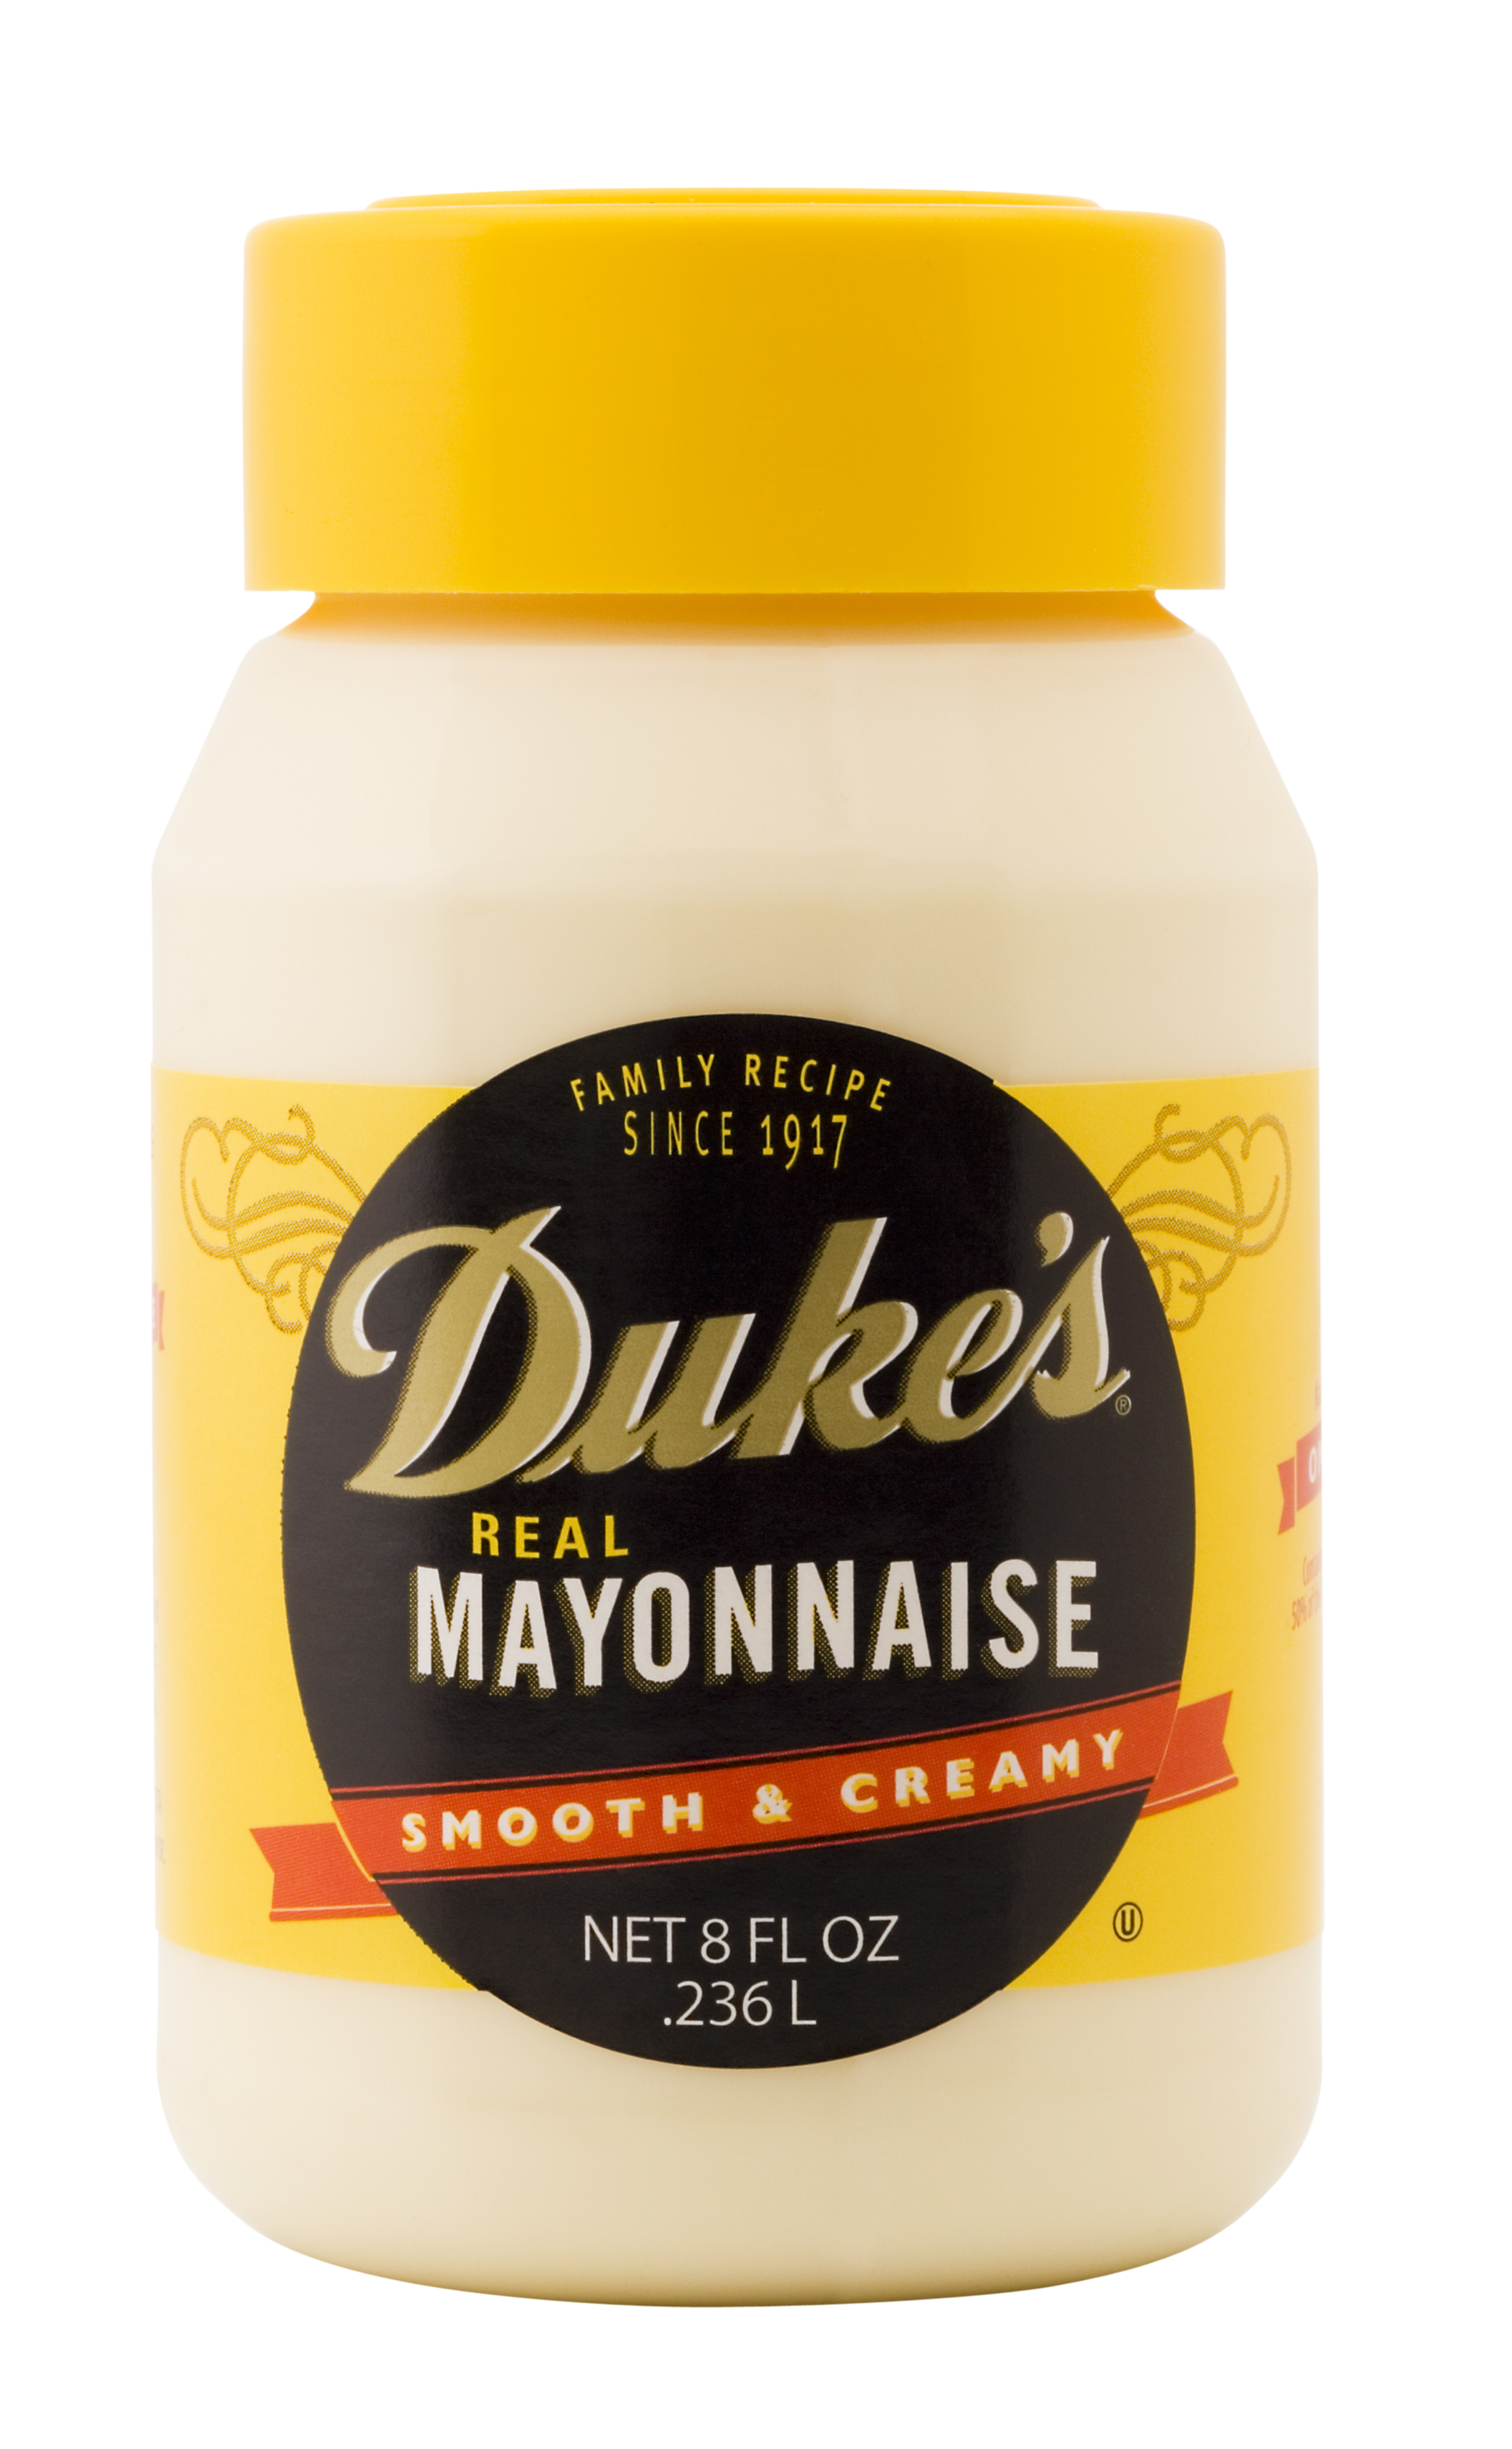 File:8oz Duke's Mayo.jpg - Wikimedia Commons